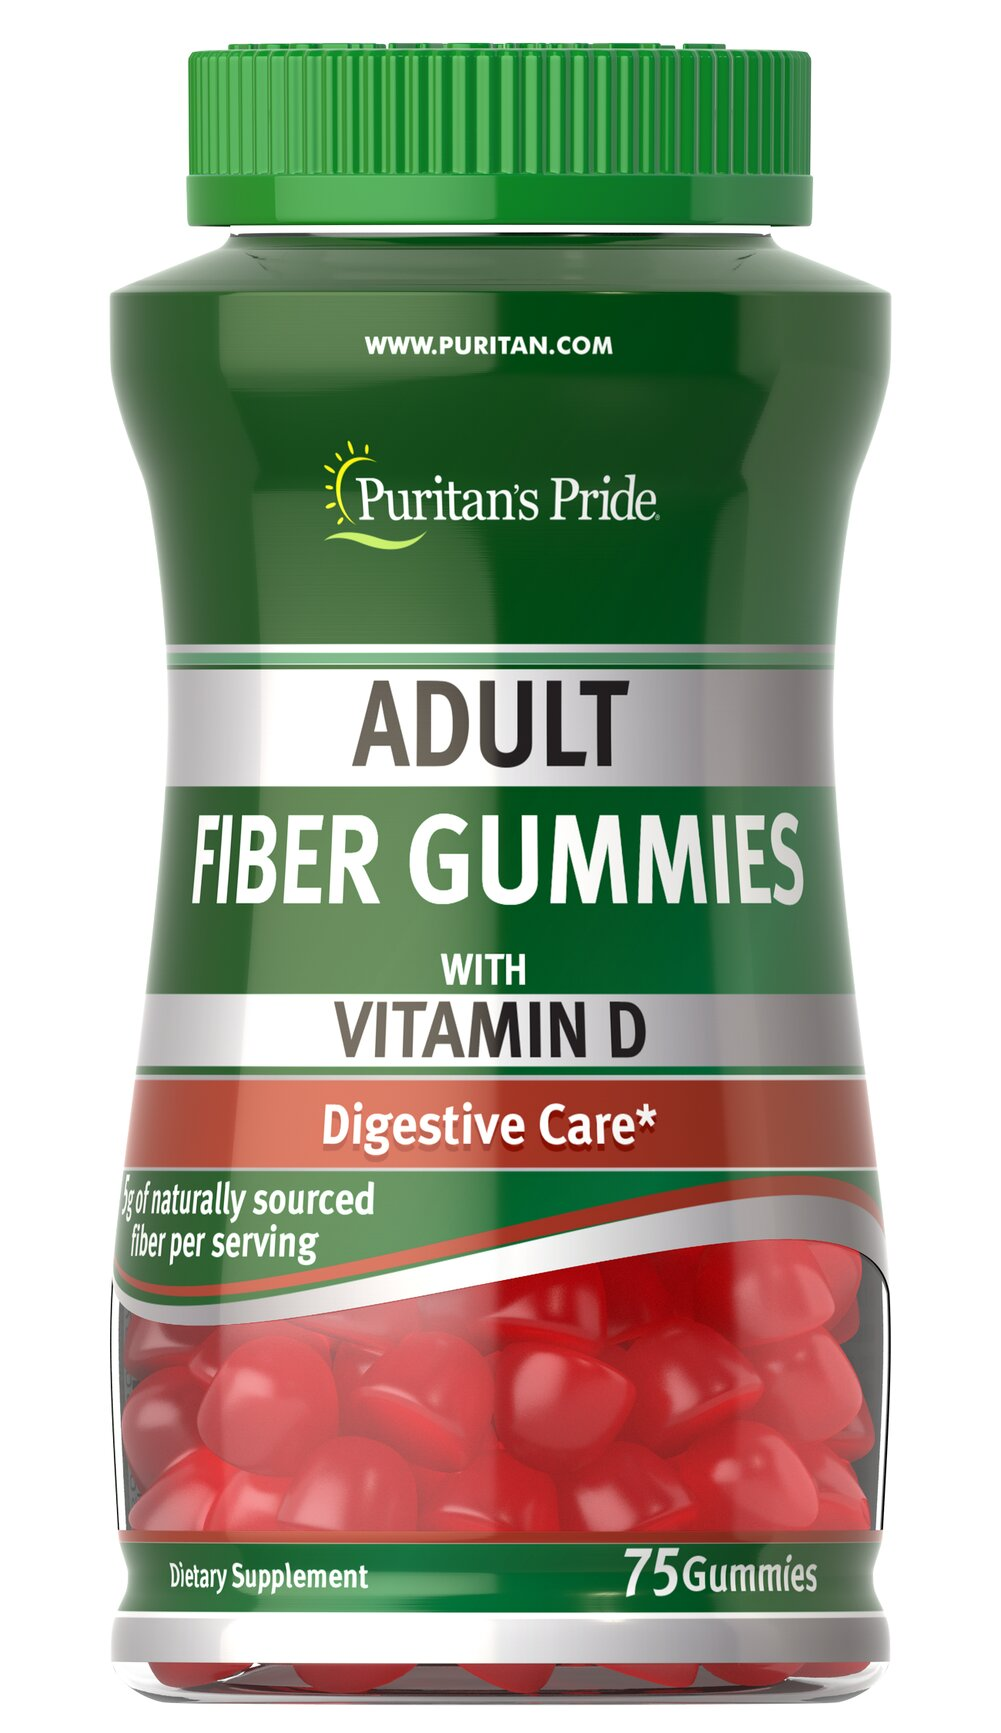 Adult Fiber Gummies with Vitamin D  75 Gummies  $26.99